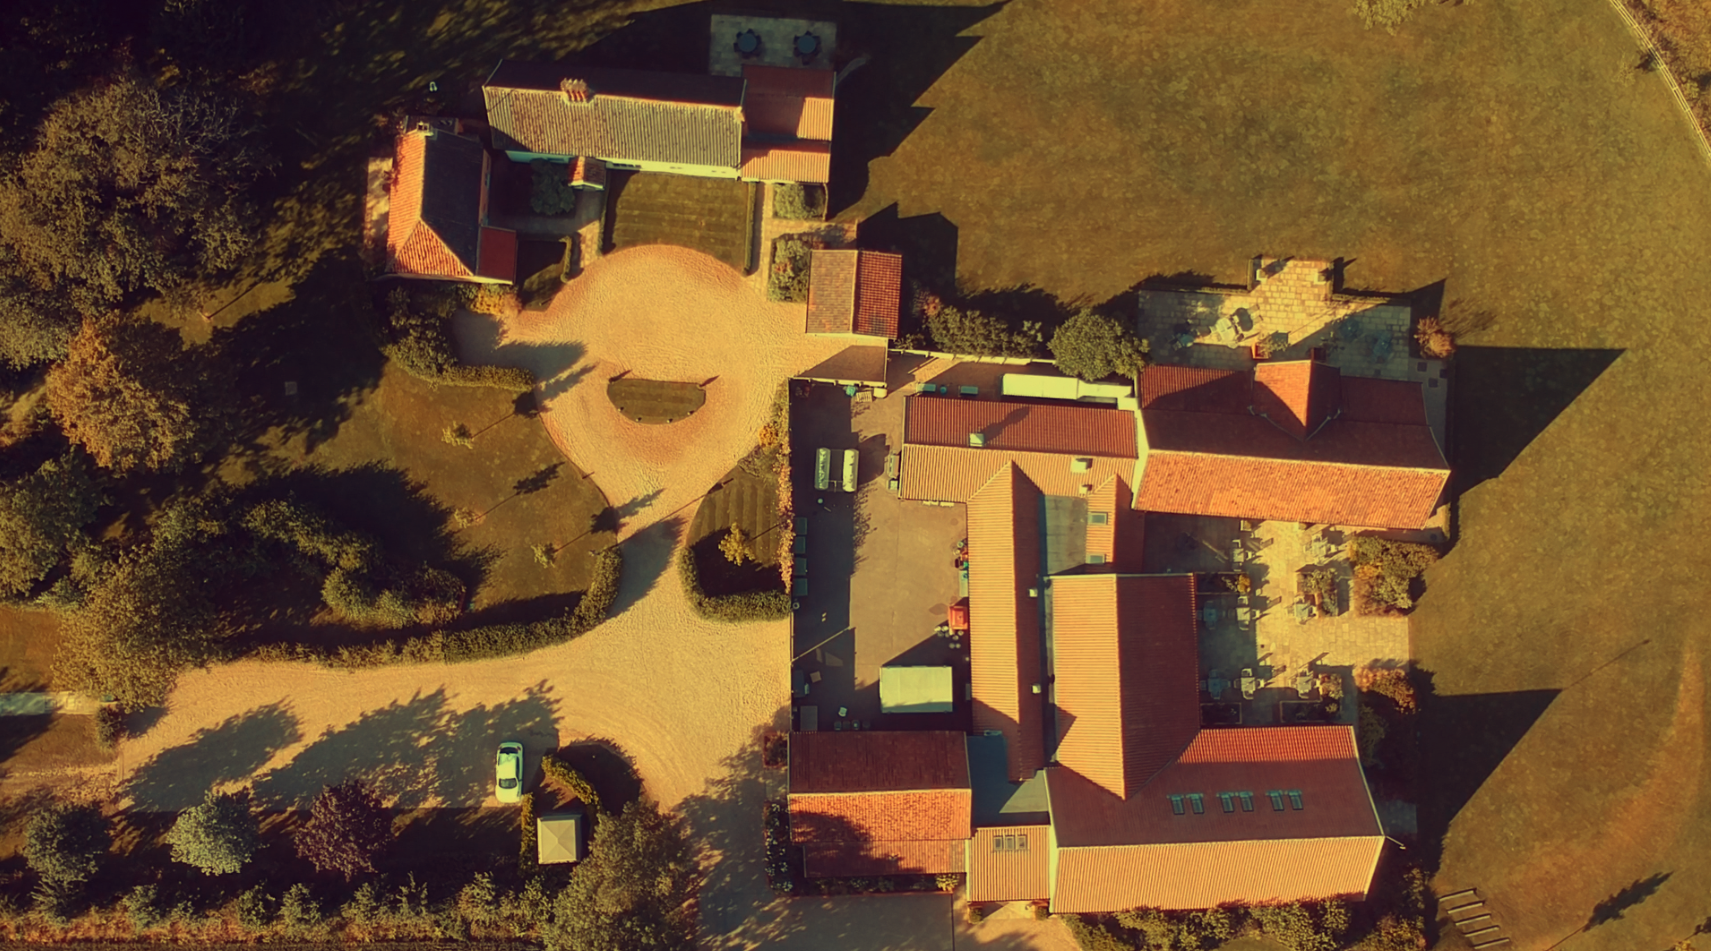 Image above: Easton Grange wedding venue from a different perspective helps set the scene!